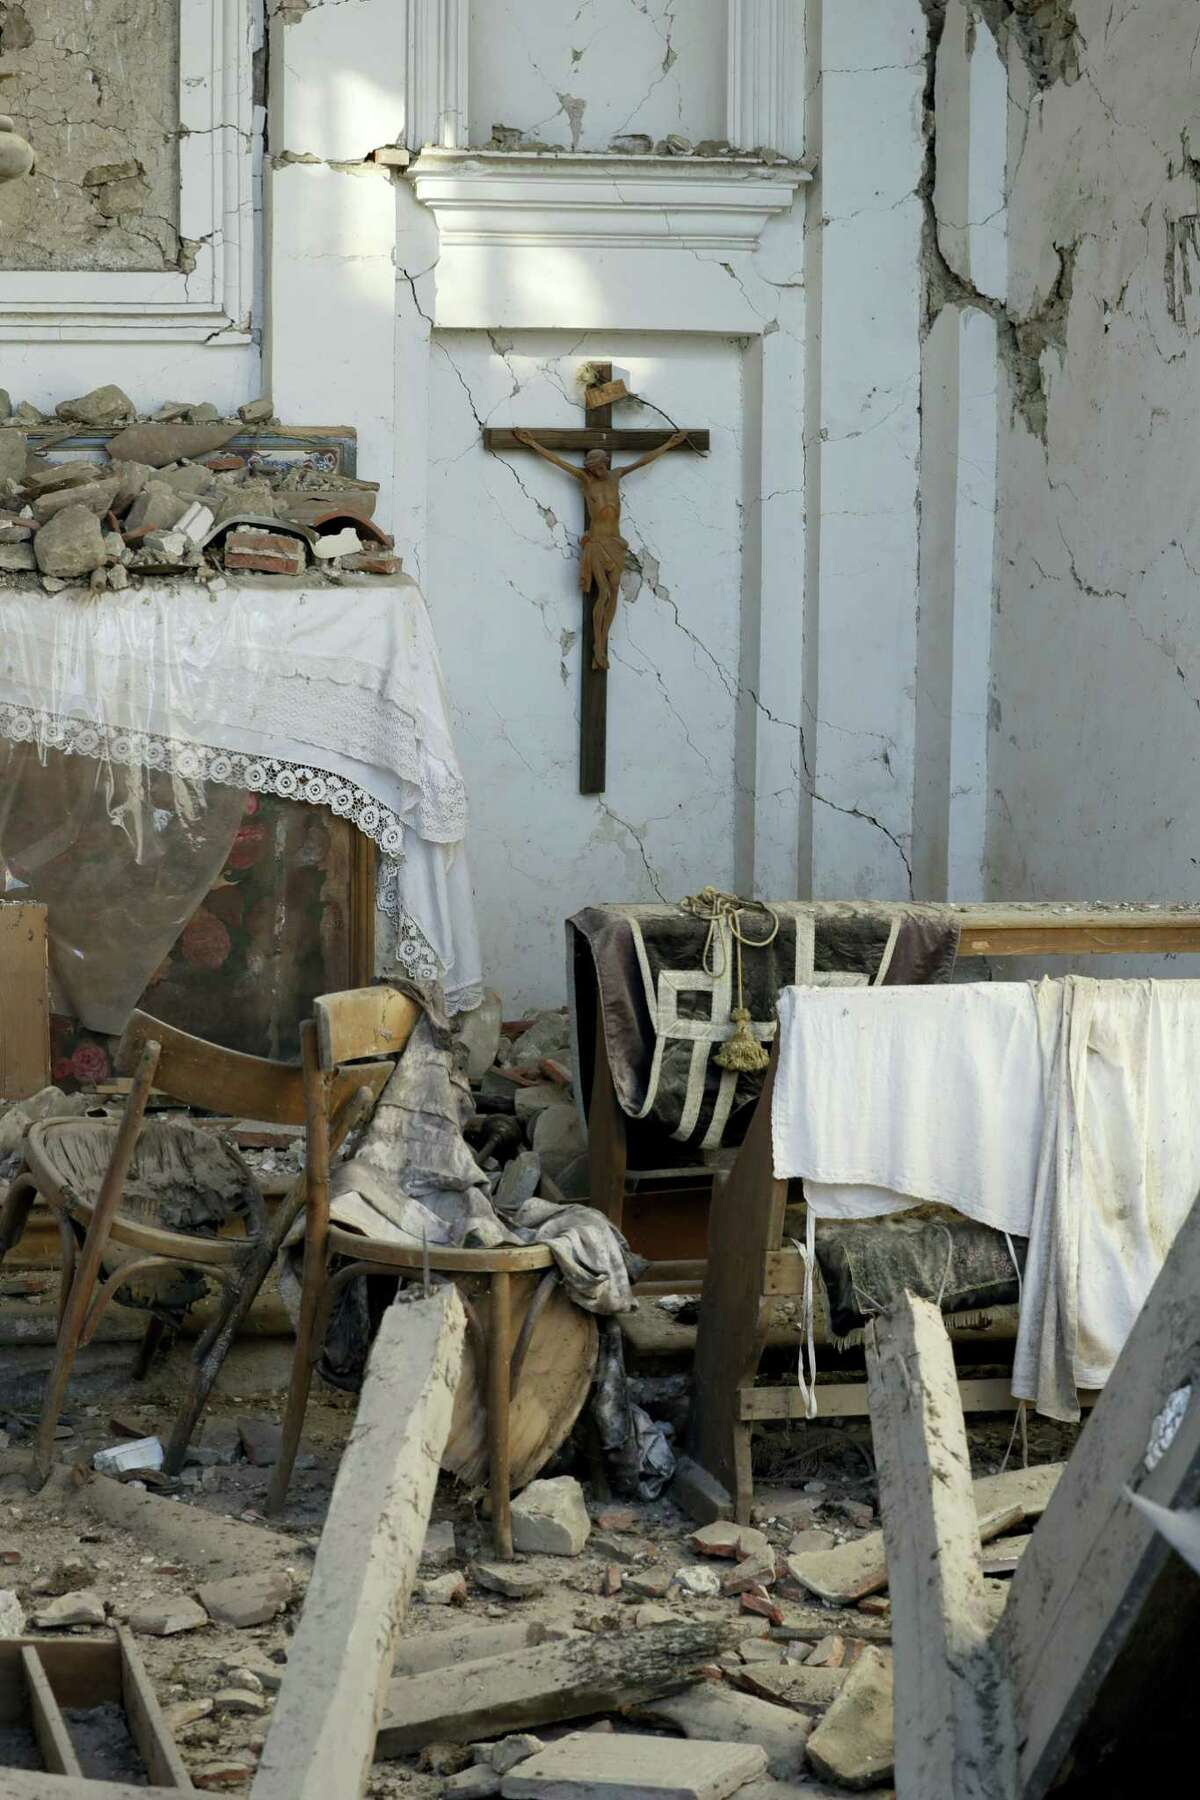 A crucifix hangs on the wall of the severely damaged church in the village of Santi Lorenzo e Flaviano, central Italy, Saturday, Aug. 27, 2016. Italians bid farewell Saturday to victims of the devastating earthquake that struck a mountainous region of central Italy this week.